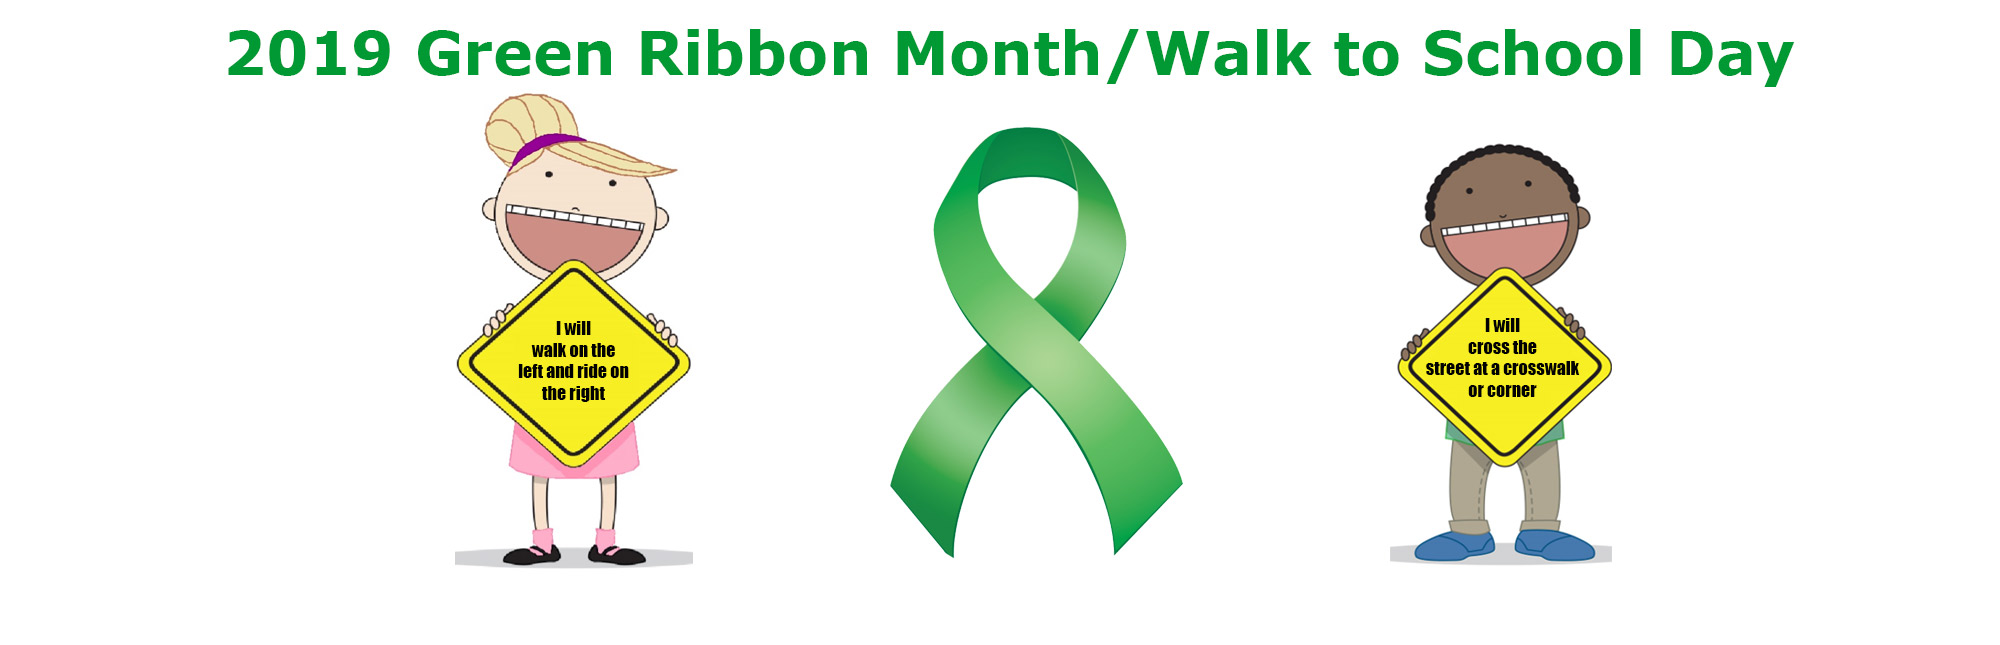 2019 Green Ribbon Month/Walk to School Day